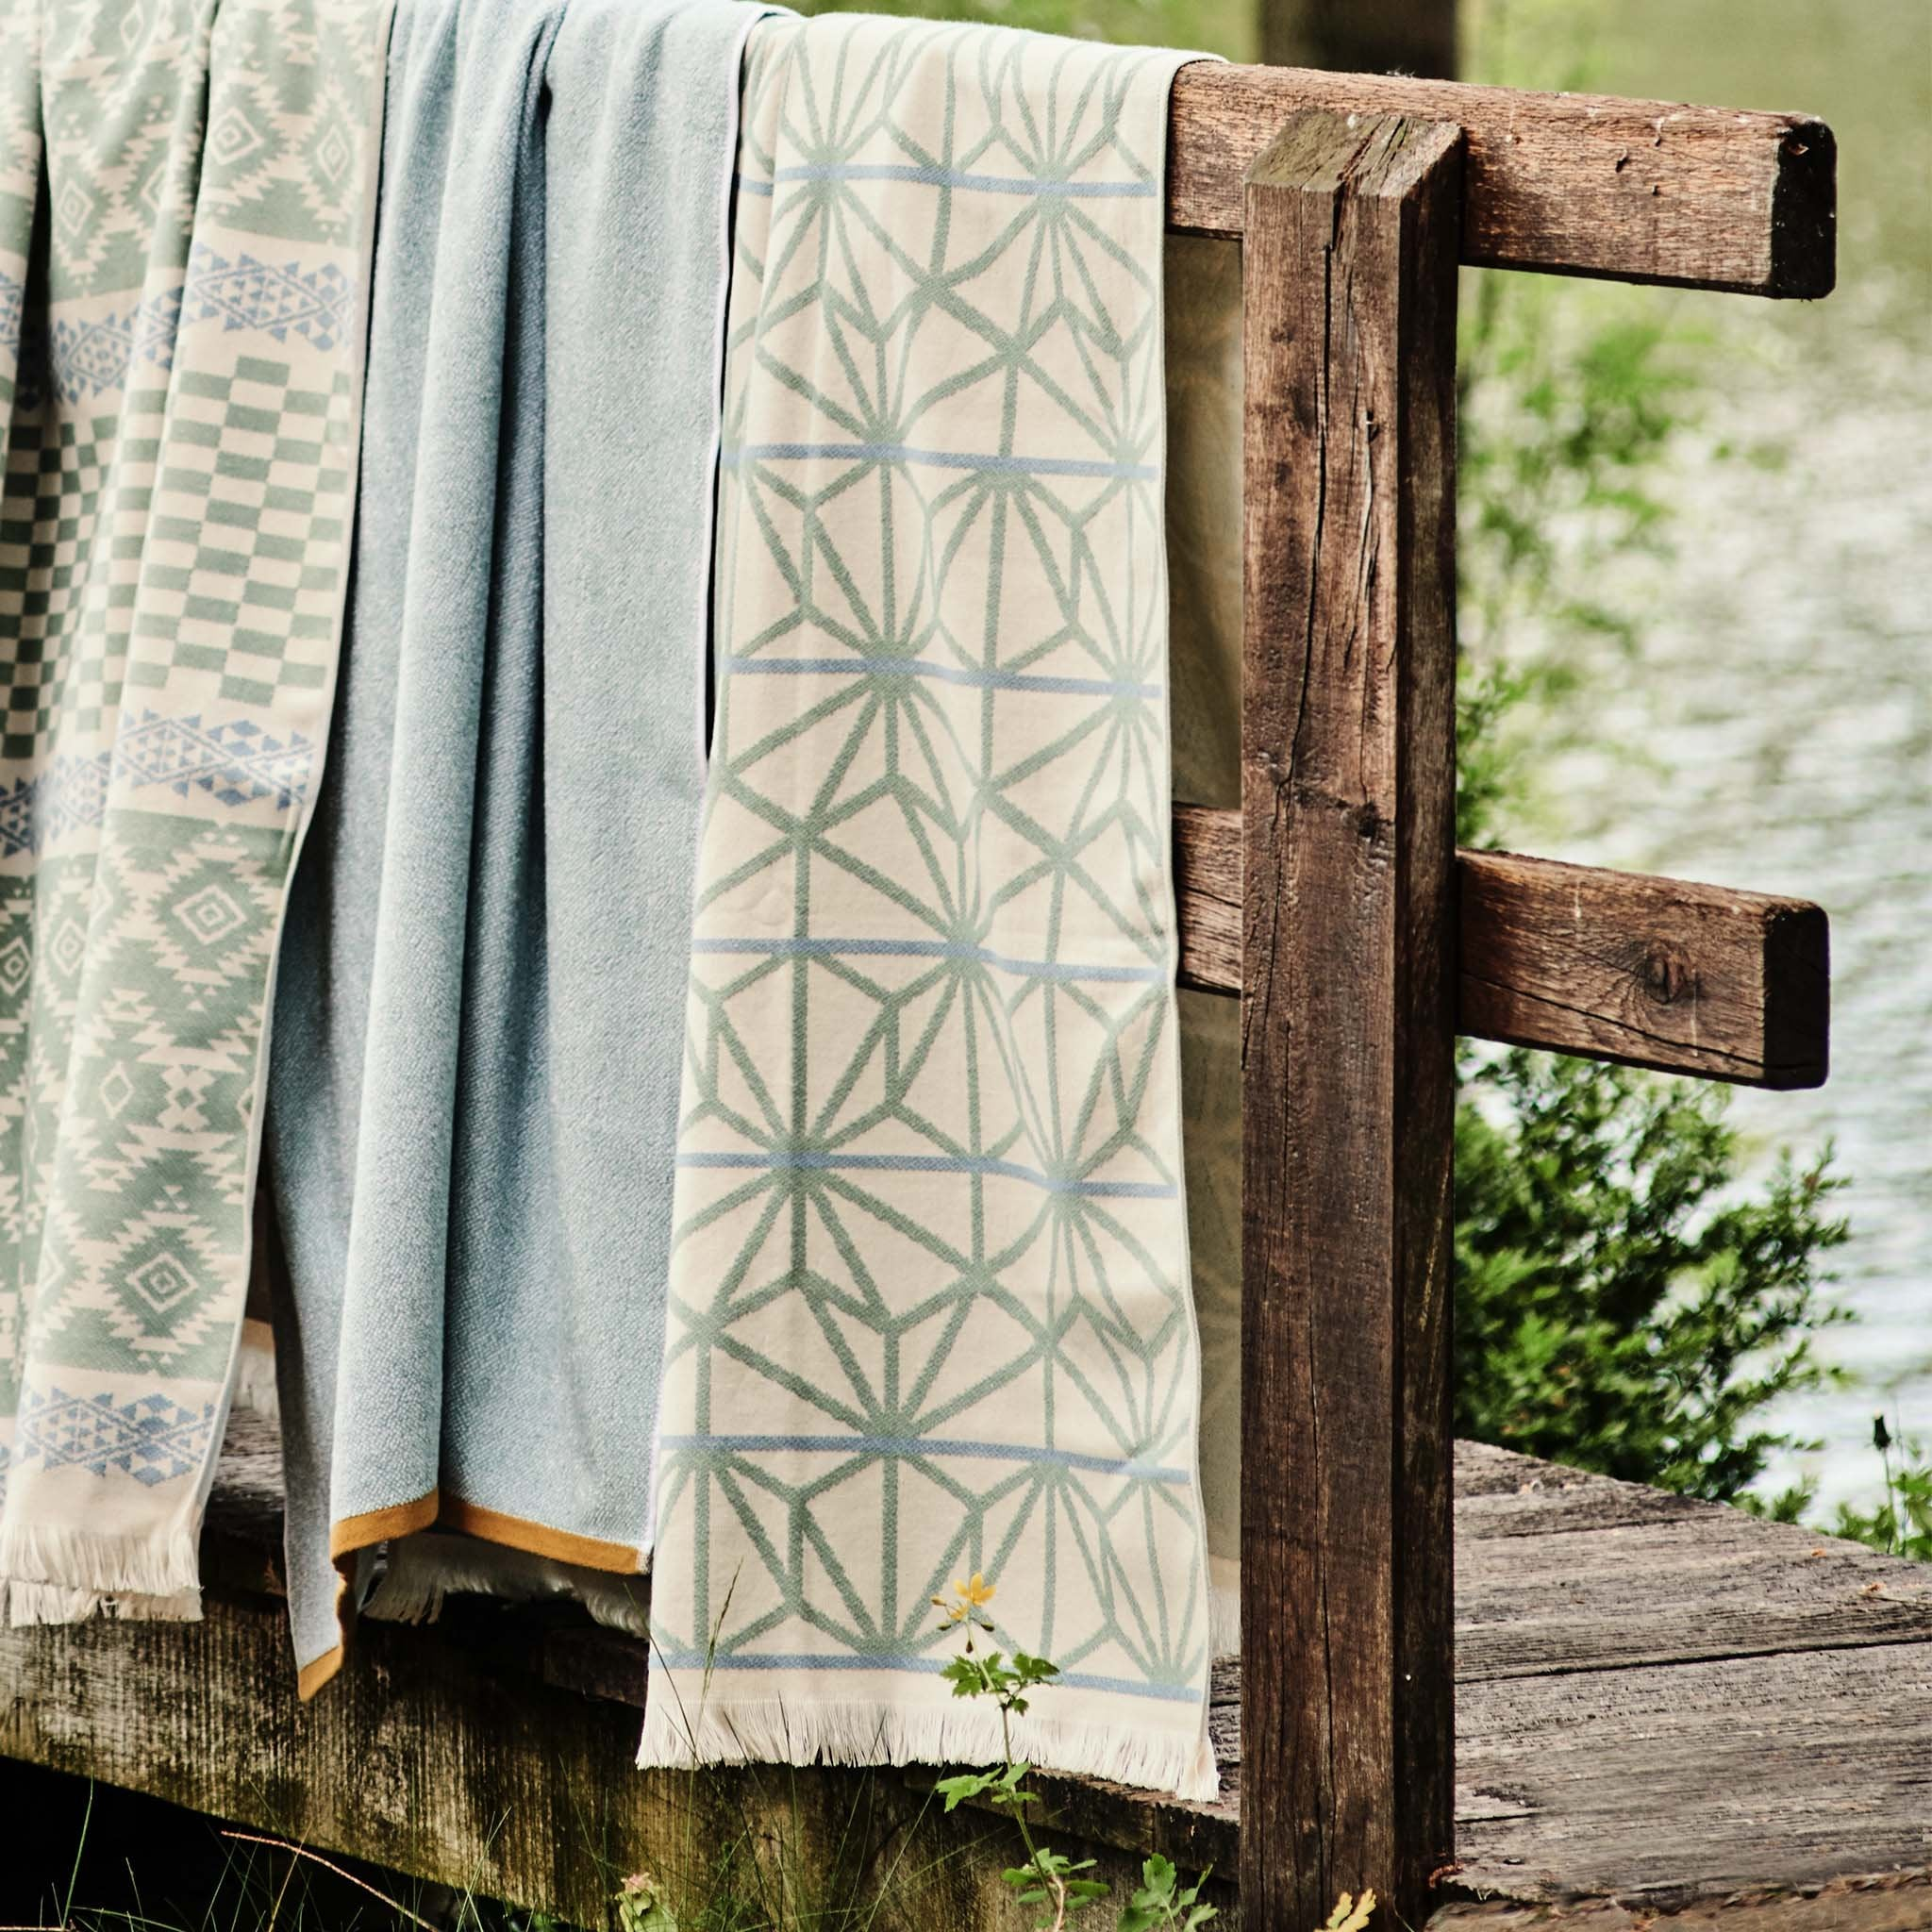 Arade Beach Towel in natural white & light grey green & light grey blue | Home & Living inspiration | URBANARA